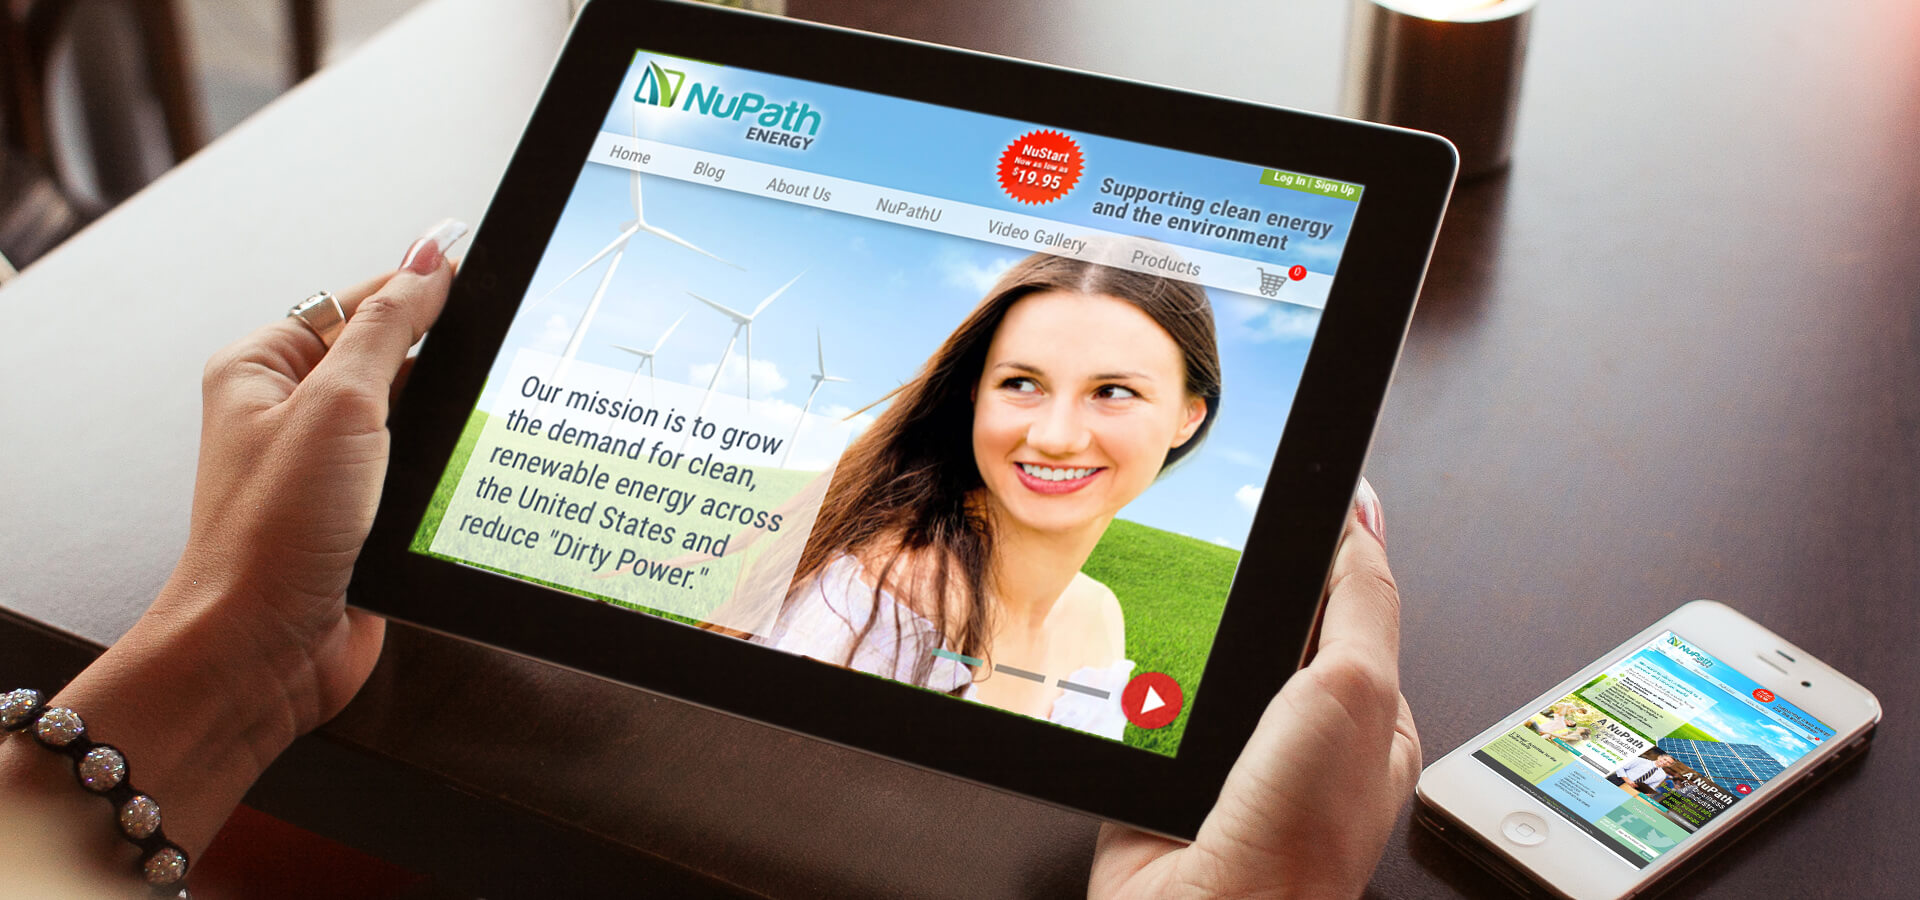 NuPath Energy's New Website and Brand Development